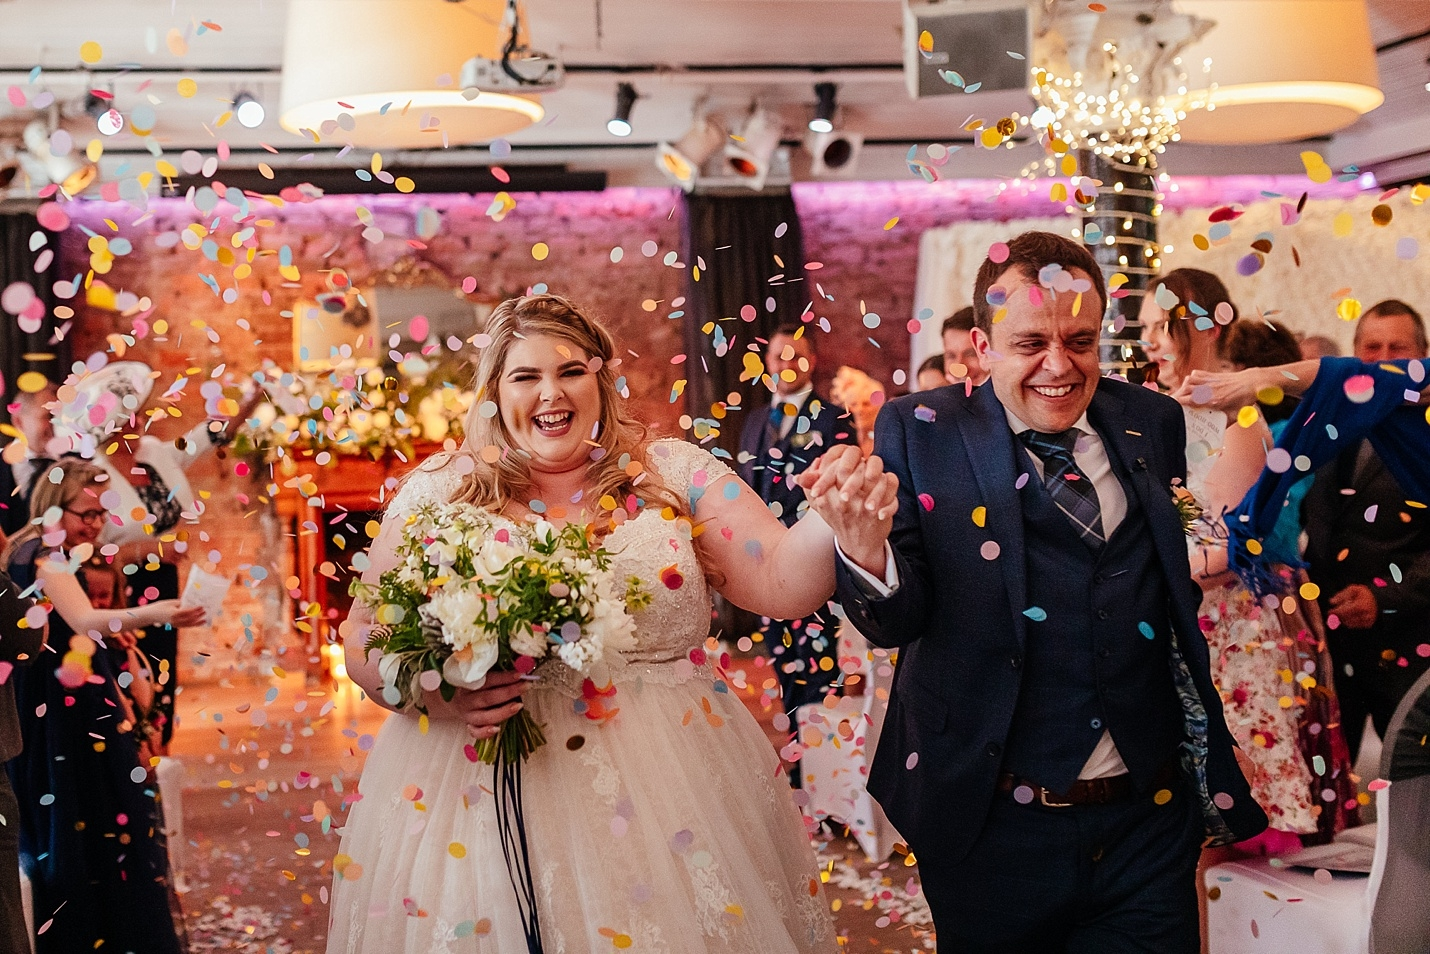 Bride and groom exit ceremony as colourful confetti is thrown